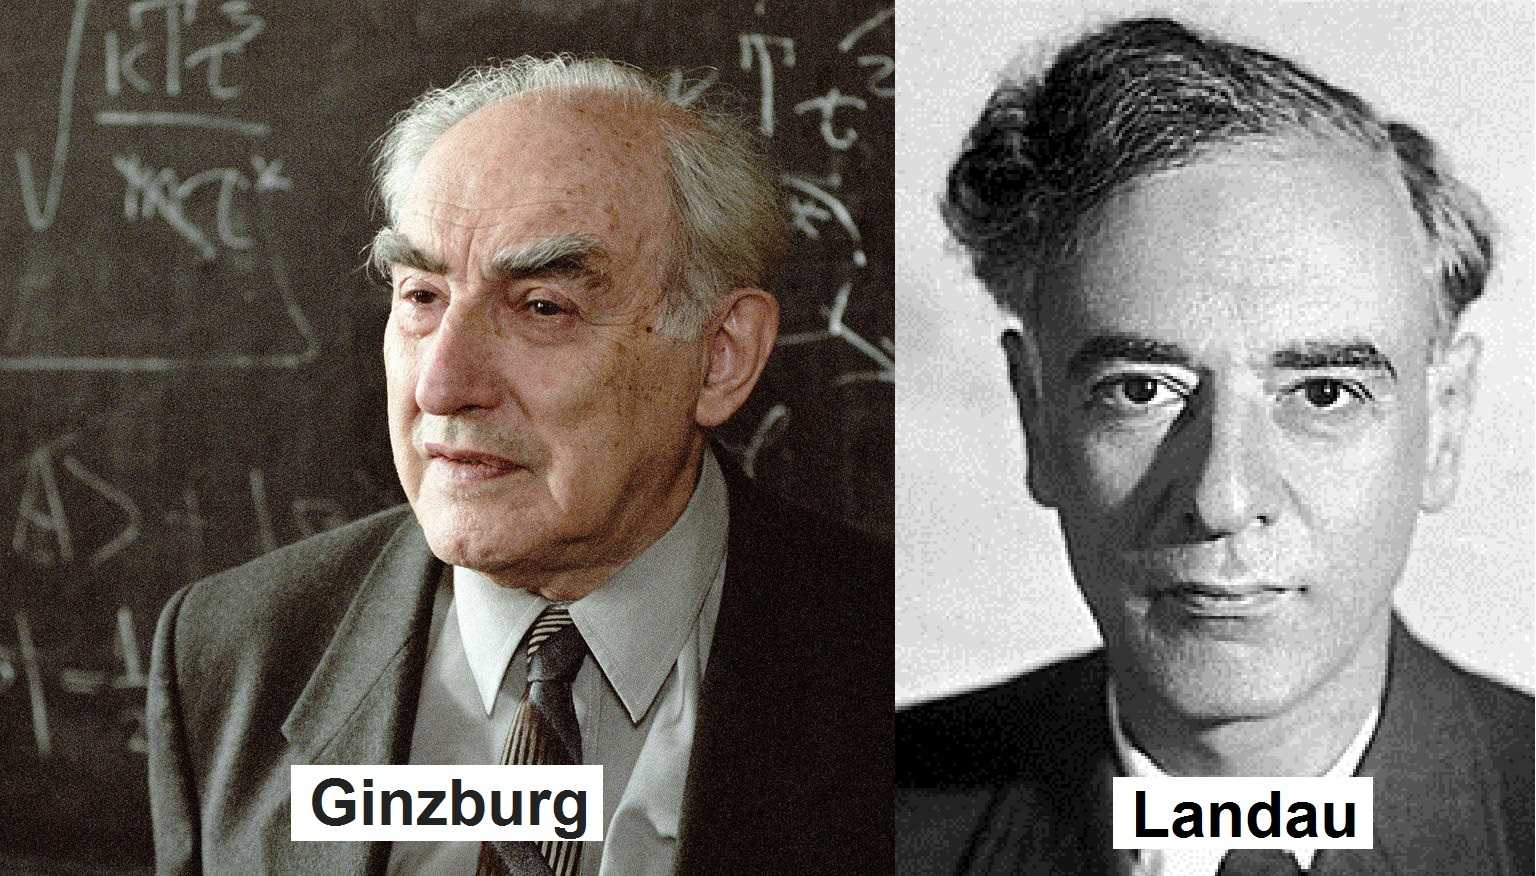 The superconductivity theory of Ginzburg-Landau